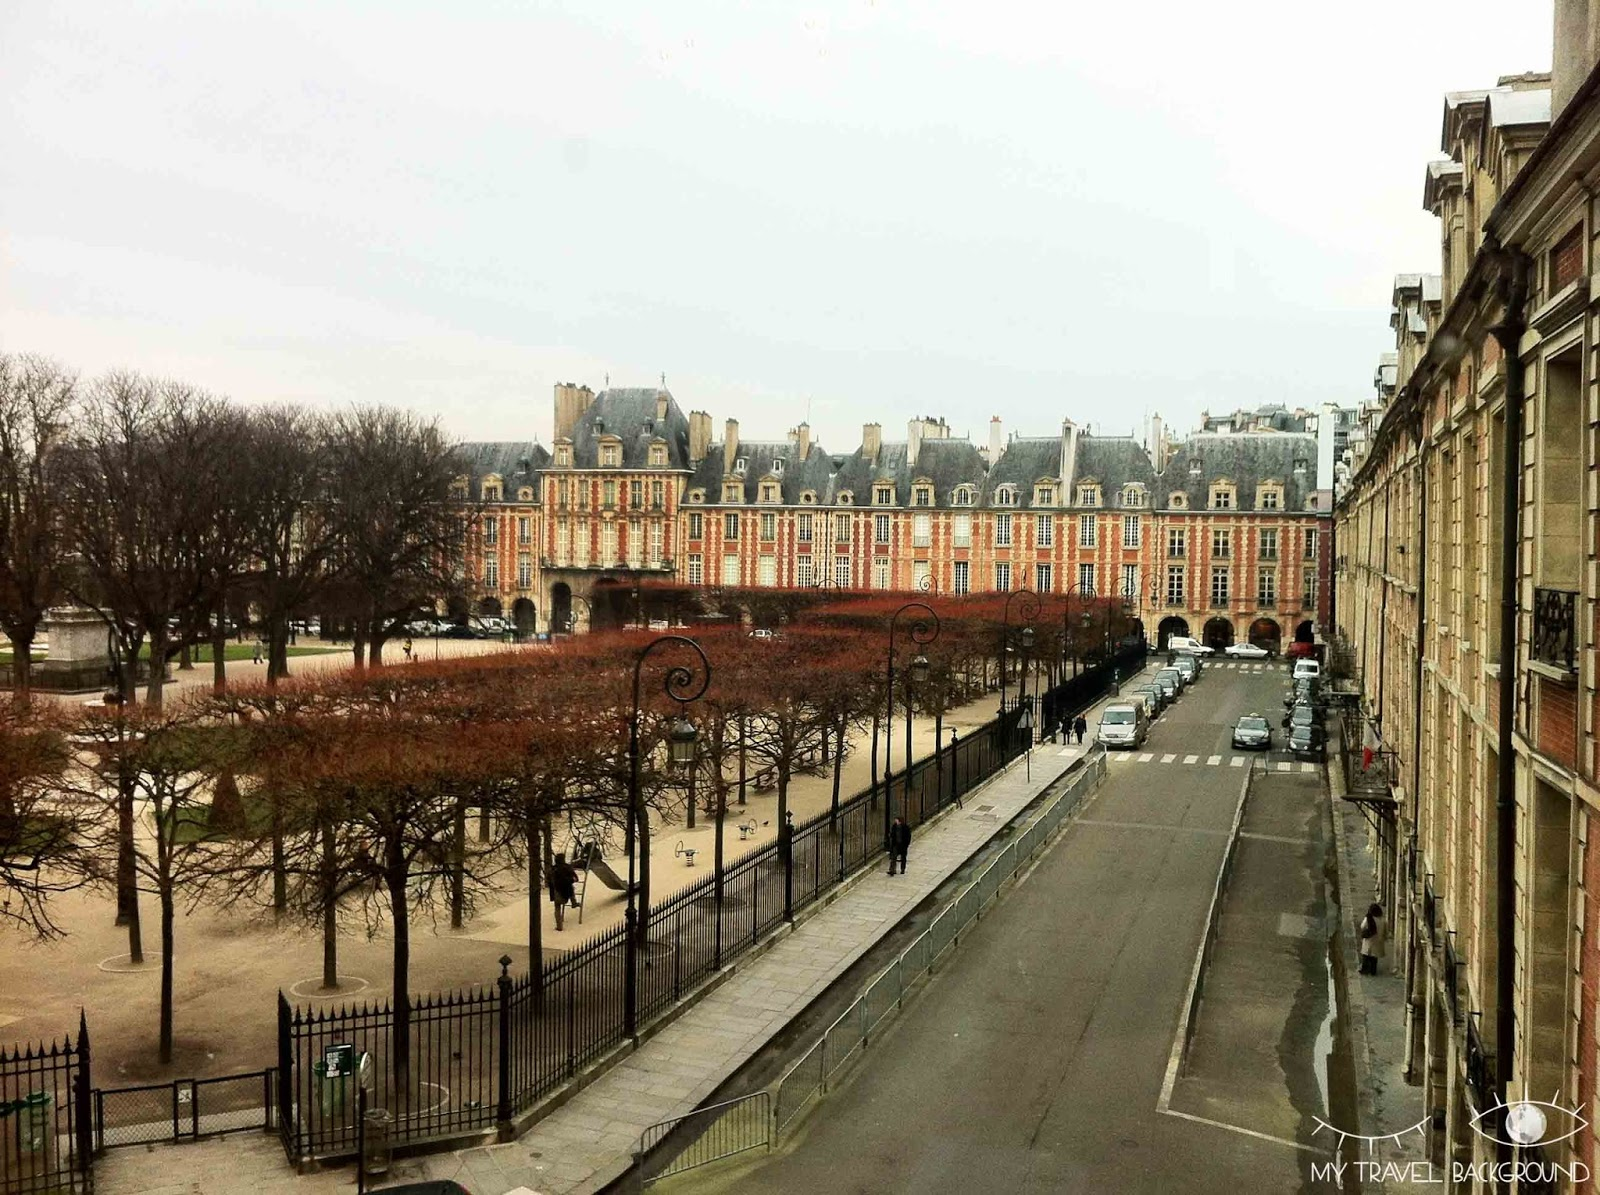 My Travel Background : #ParisPromenade, Le Marais - La place des Vosges